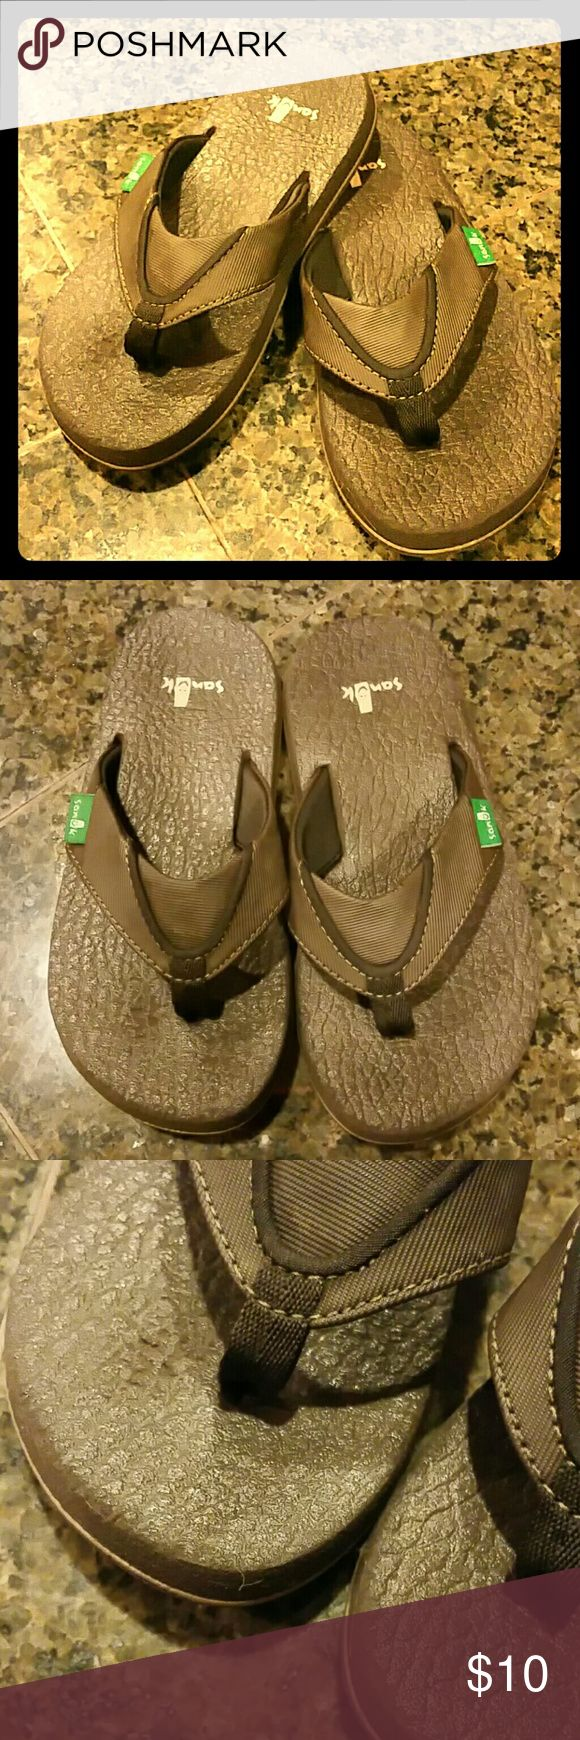 Boys Sanuk Flip Flops Great Sanuk flip flops for boys in size 12-13.  Only worn for one season.  Only signs of wear is under the toes on the right shoe (as shown in 3rd photo) and on the heels (as shown on 4th photo). Sanuk Shoes Sandals & Flip Flops